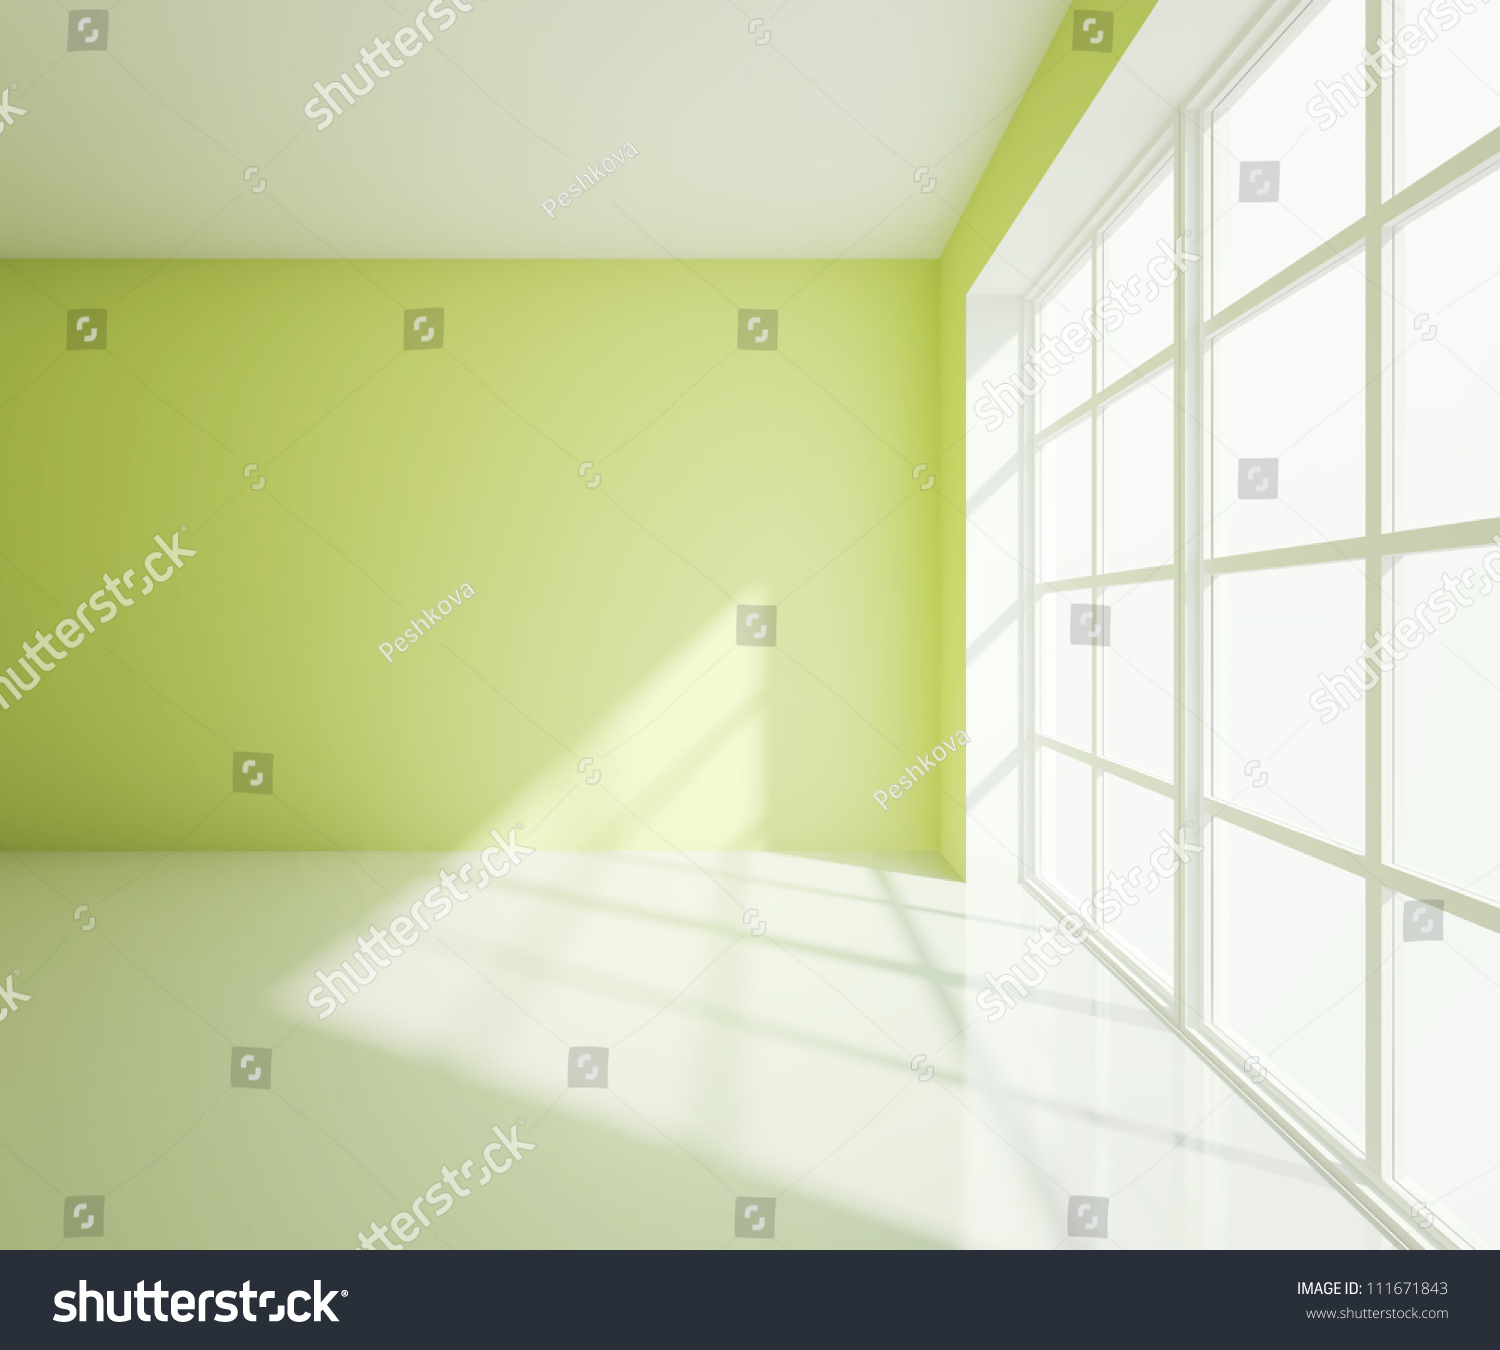 Empty Light Green Room With White Window Stock Photo